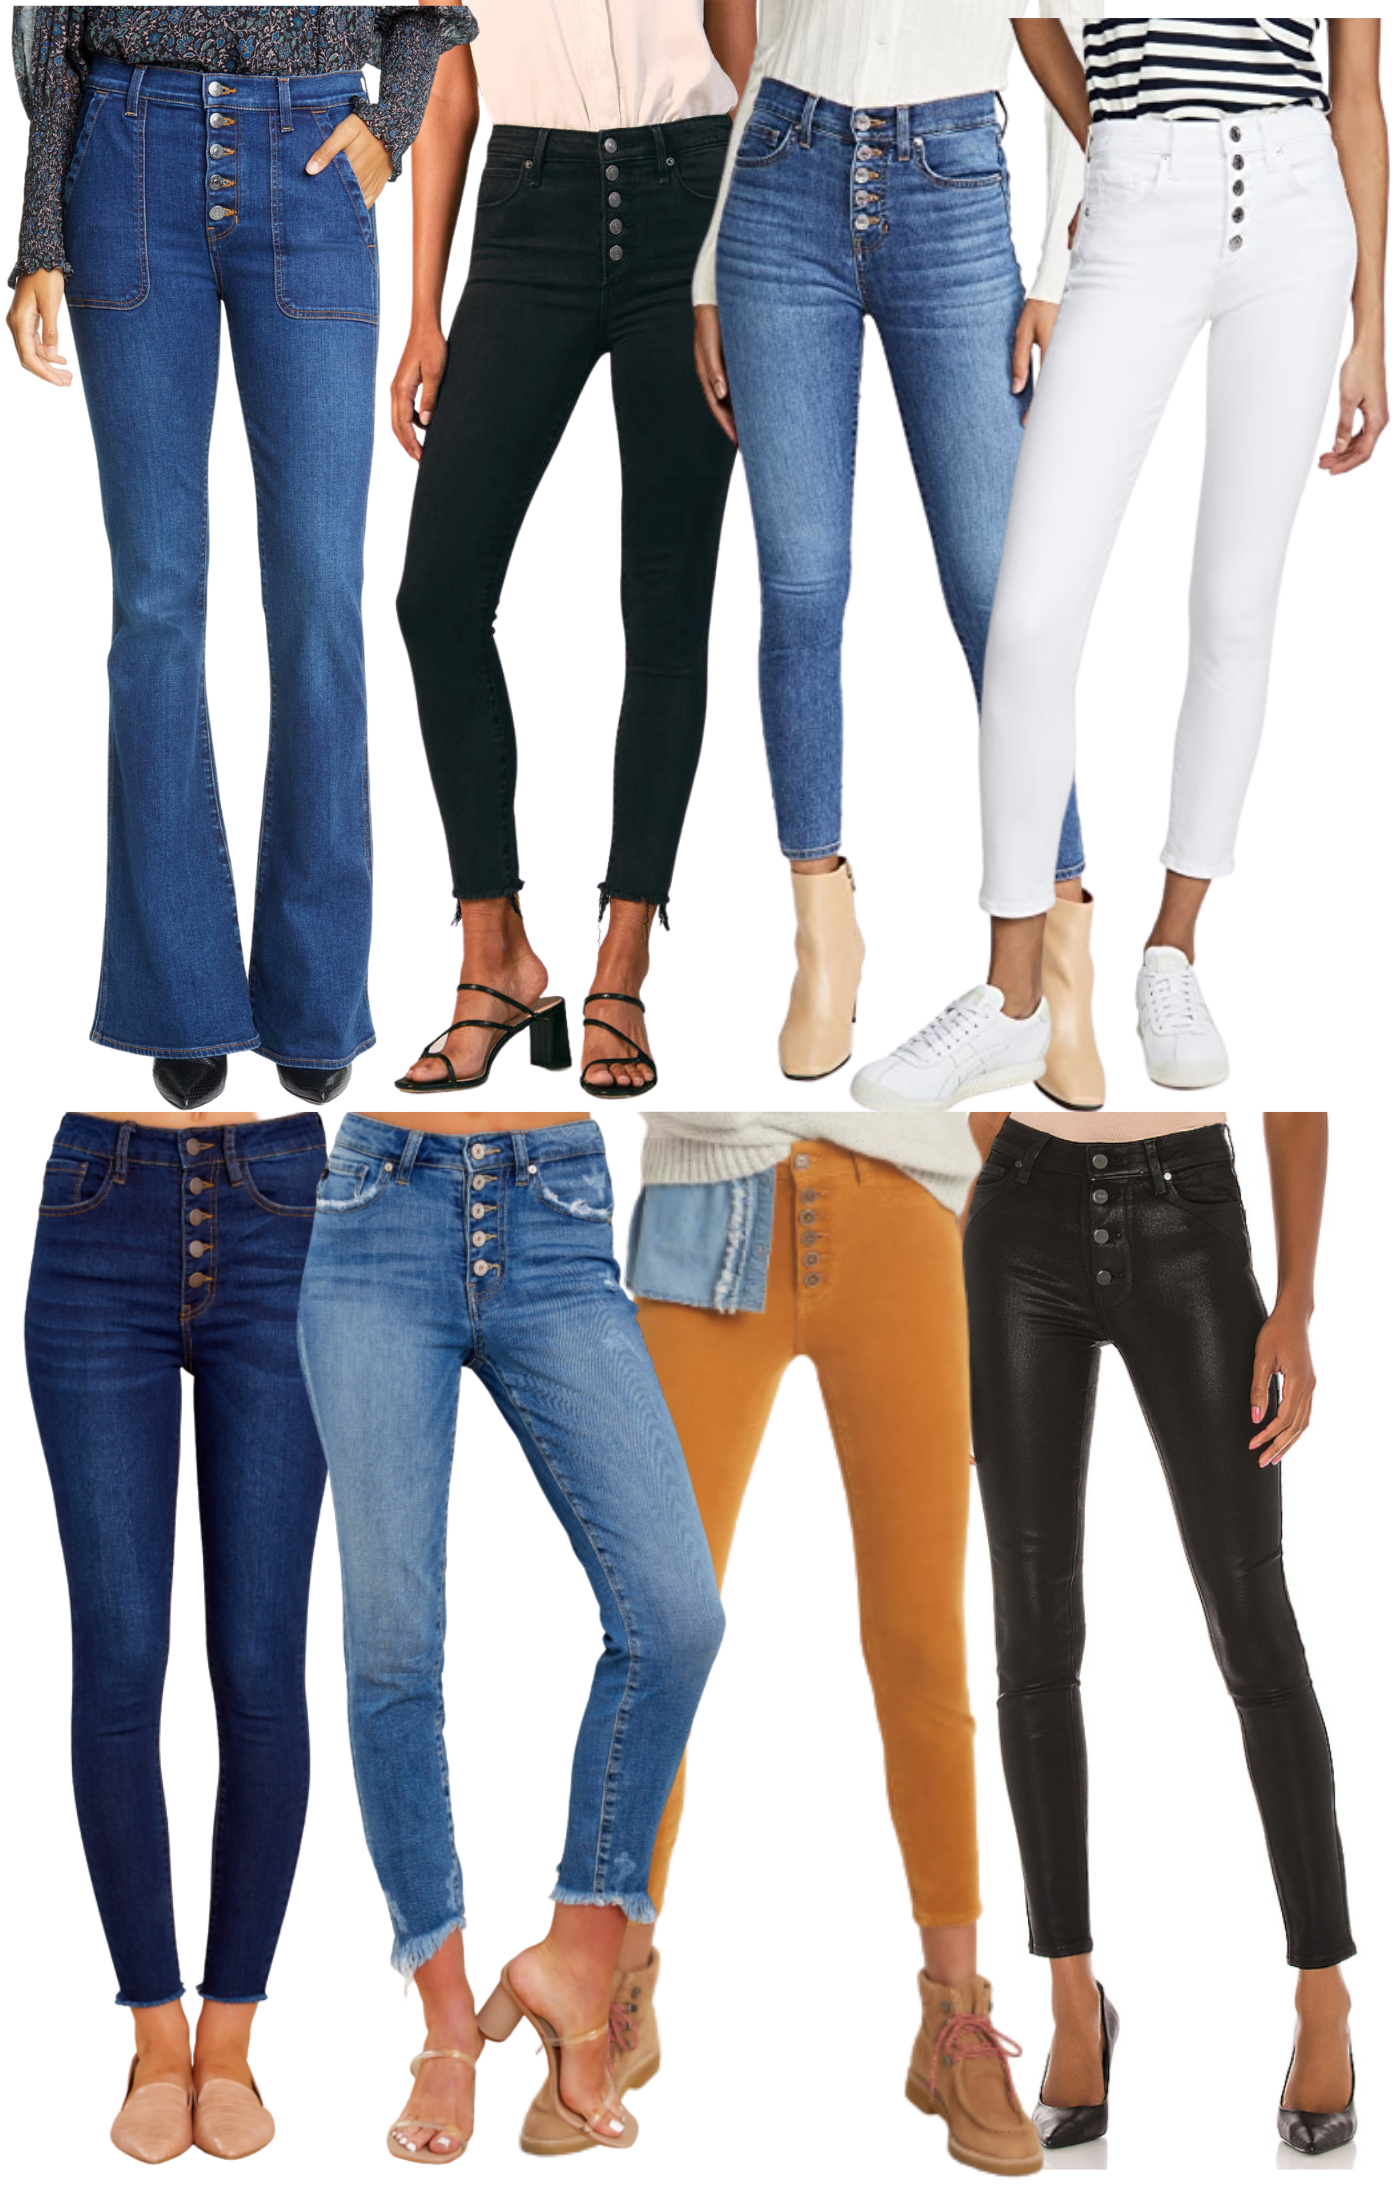 Fall Style: Exposed Button Jeans